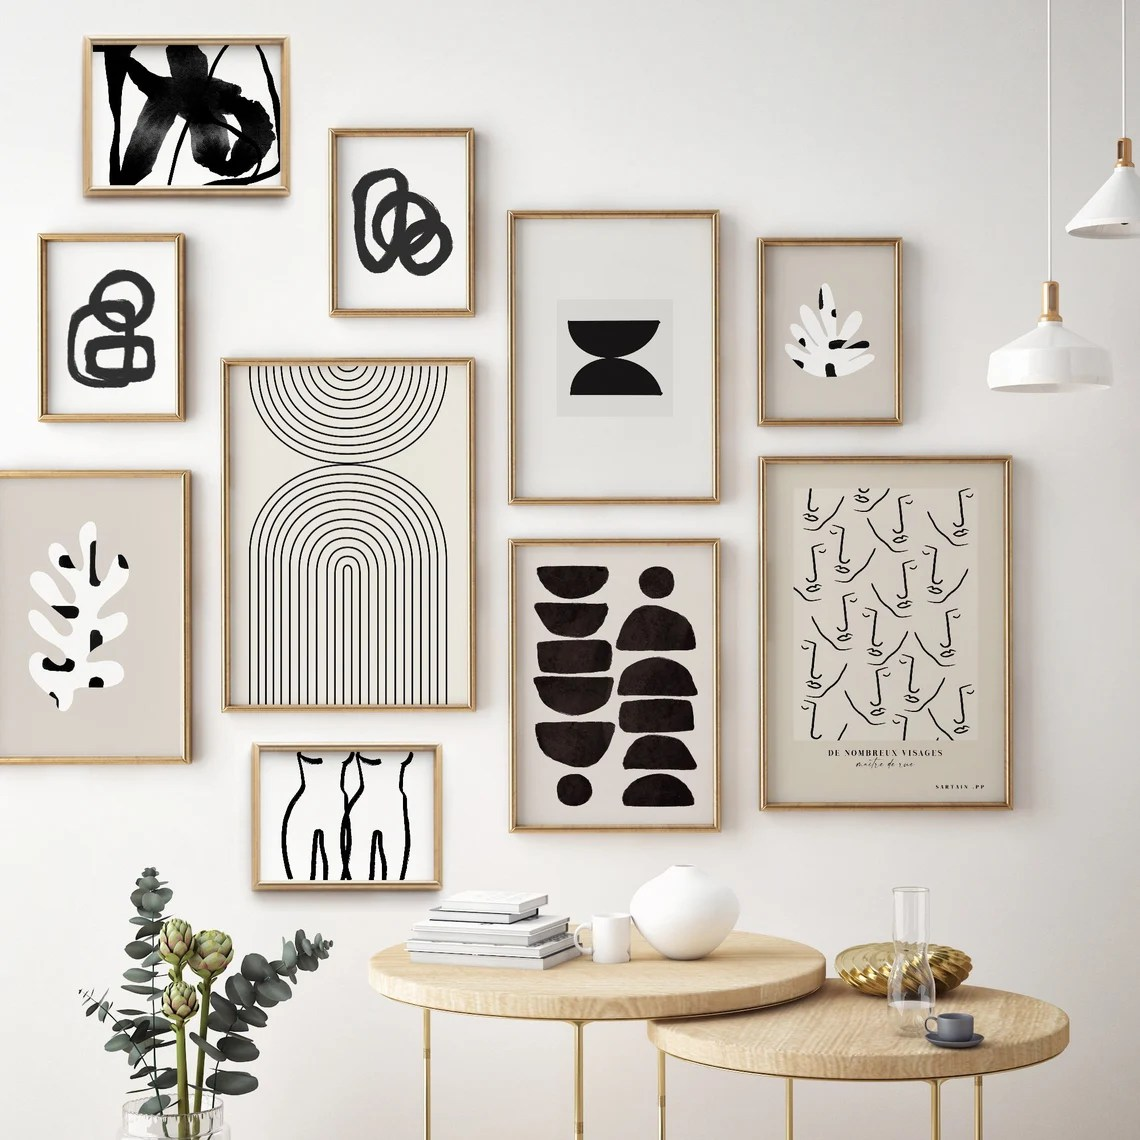 Modern Gallery Wall Set Set of 10 Prints Gallery Wall image 0